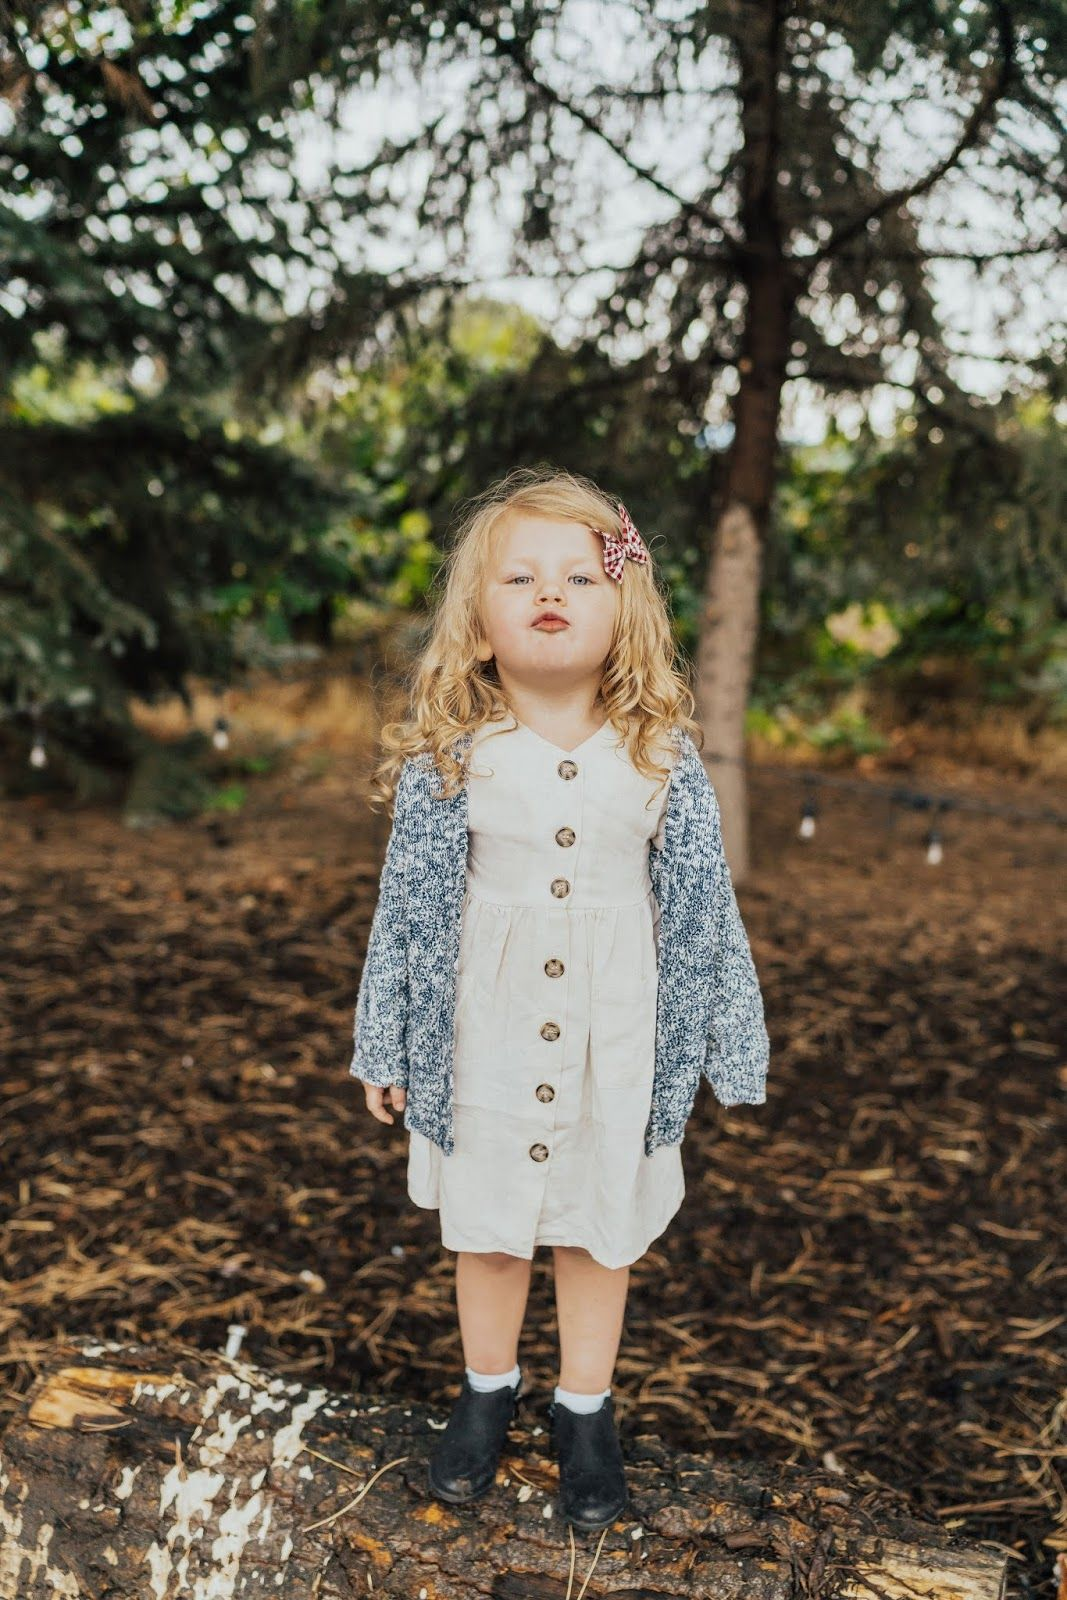 17faa29c7b4bc Instagram: @jalynnschroeder || Toddler fashion, kid fashion, toddler boots, kid  fall outfit, two year old style, button up dress, toddler style, fall outfit